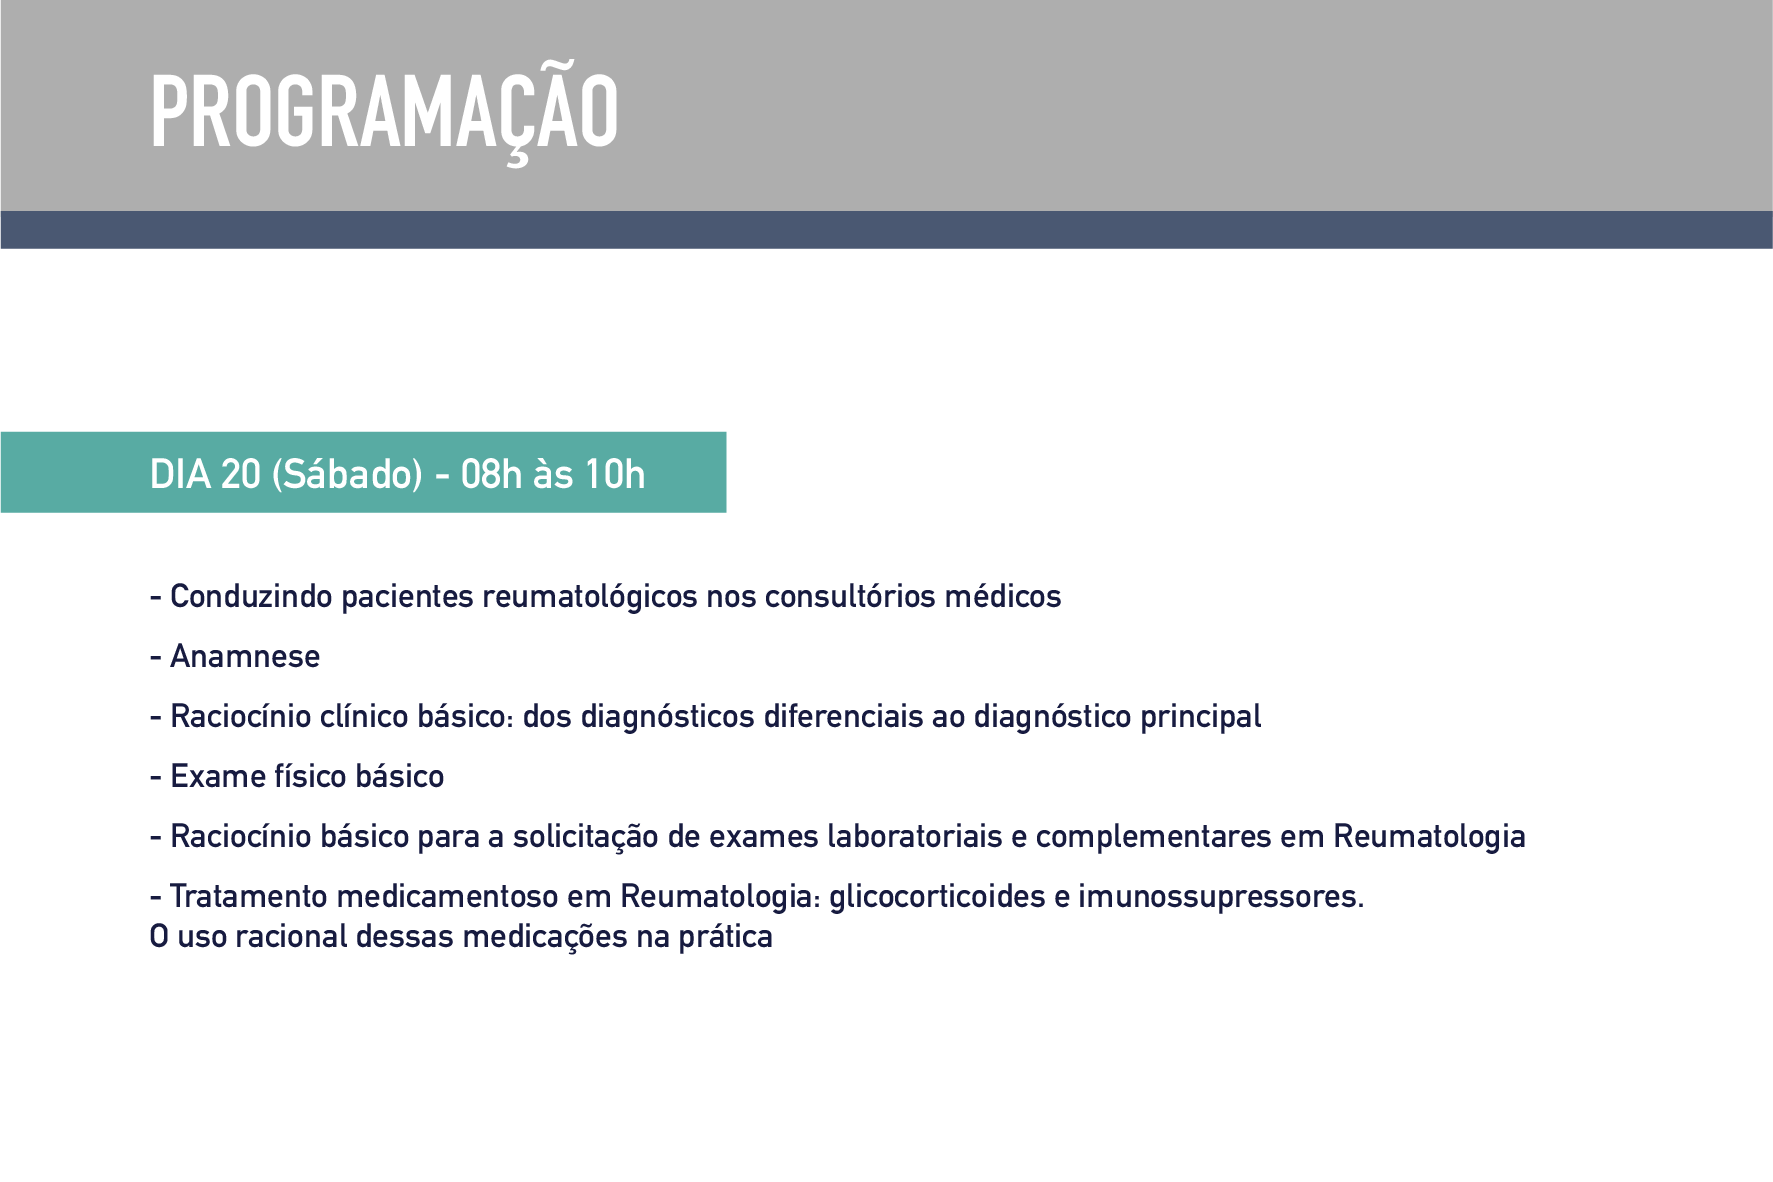 Programacao-site-New-04